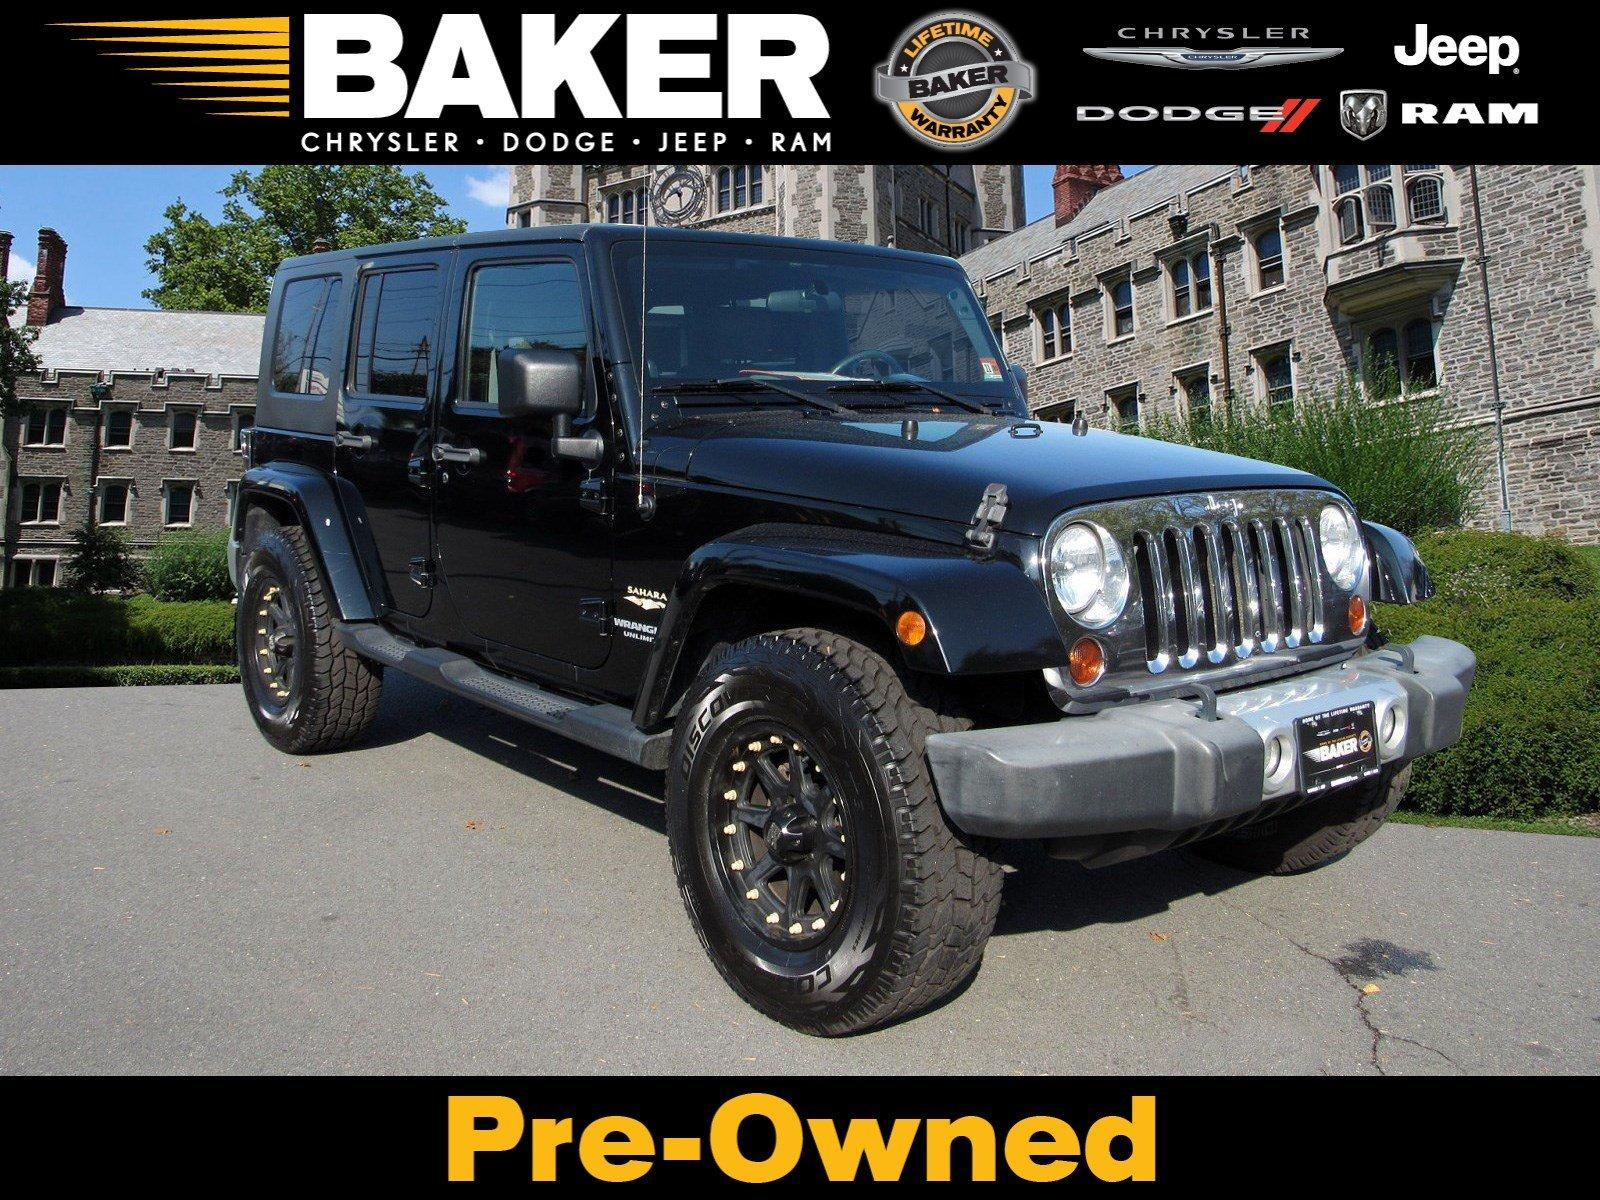 Used 2009 Jeep Wrangler Unlimited Sahara for sale Sold at Victory Lotus in Princeton NJ 08540 1